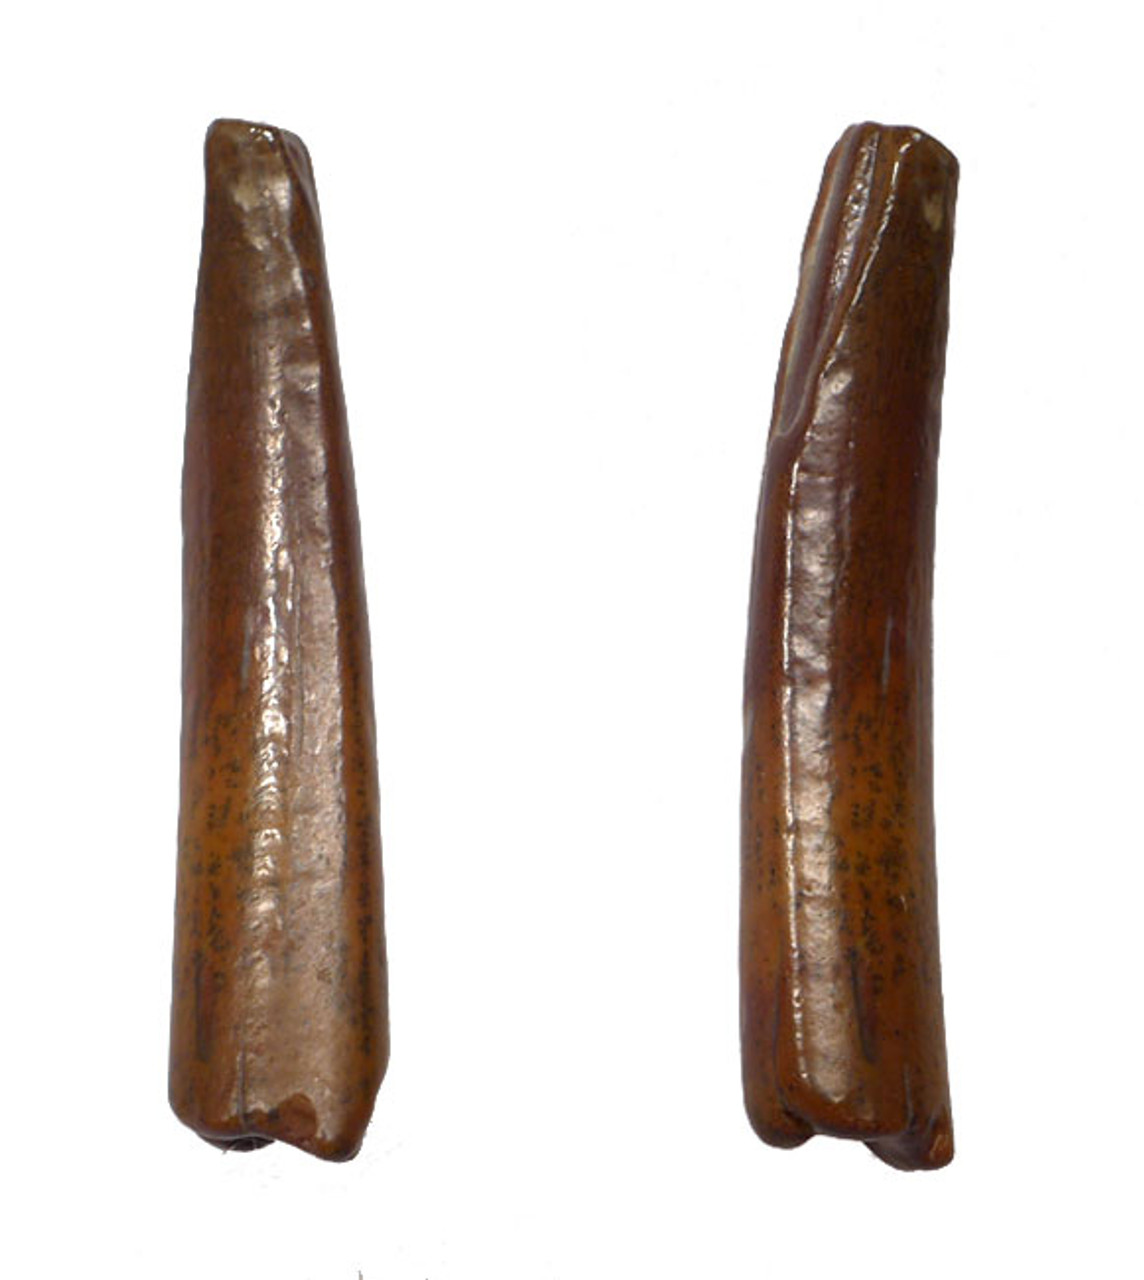 DTX003 - INCREDIBLY RARE TOOTH FROM A LARGE PTEROSAUR FROM THE TENERE DESERT